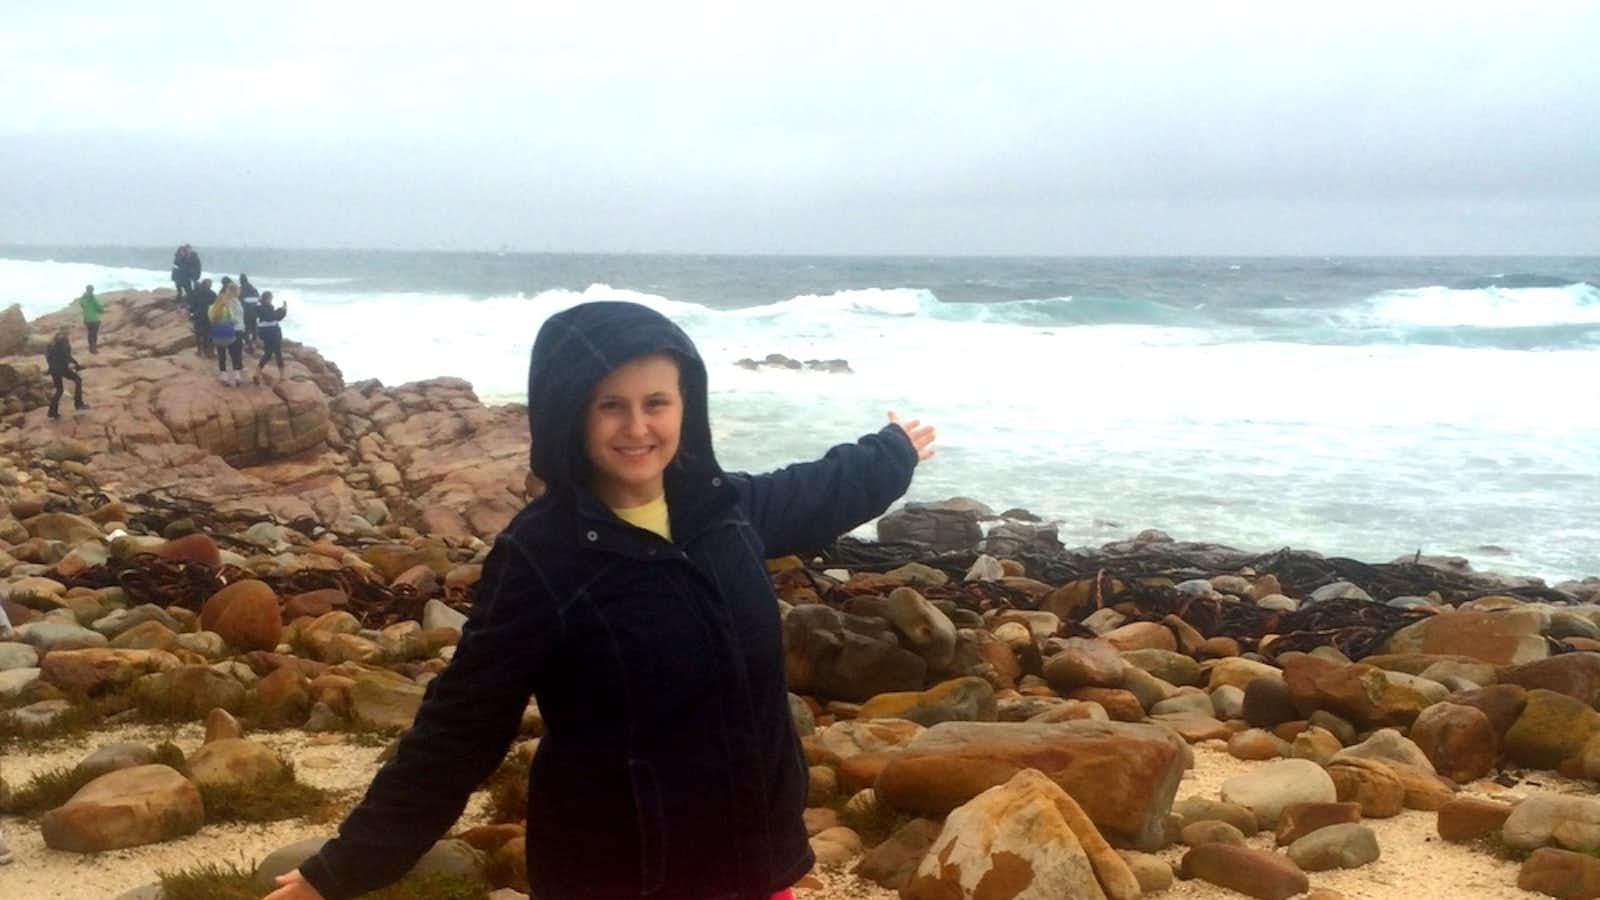 Enjoying the view at Cape Point